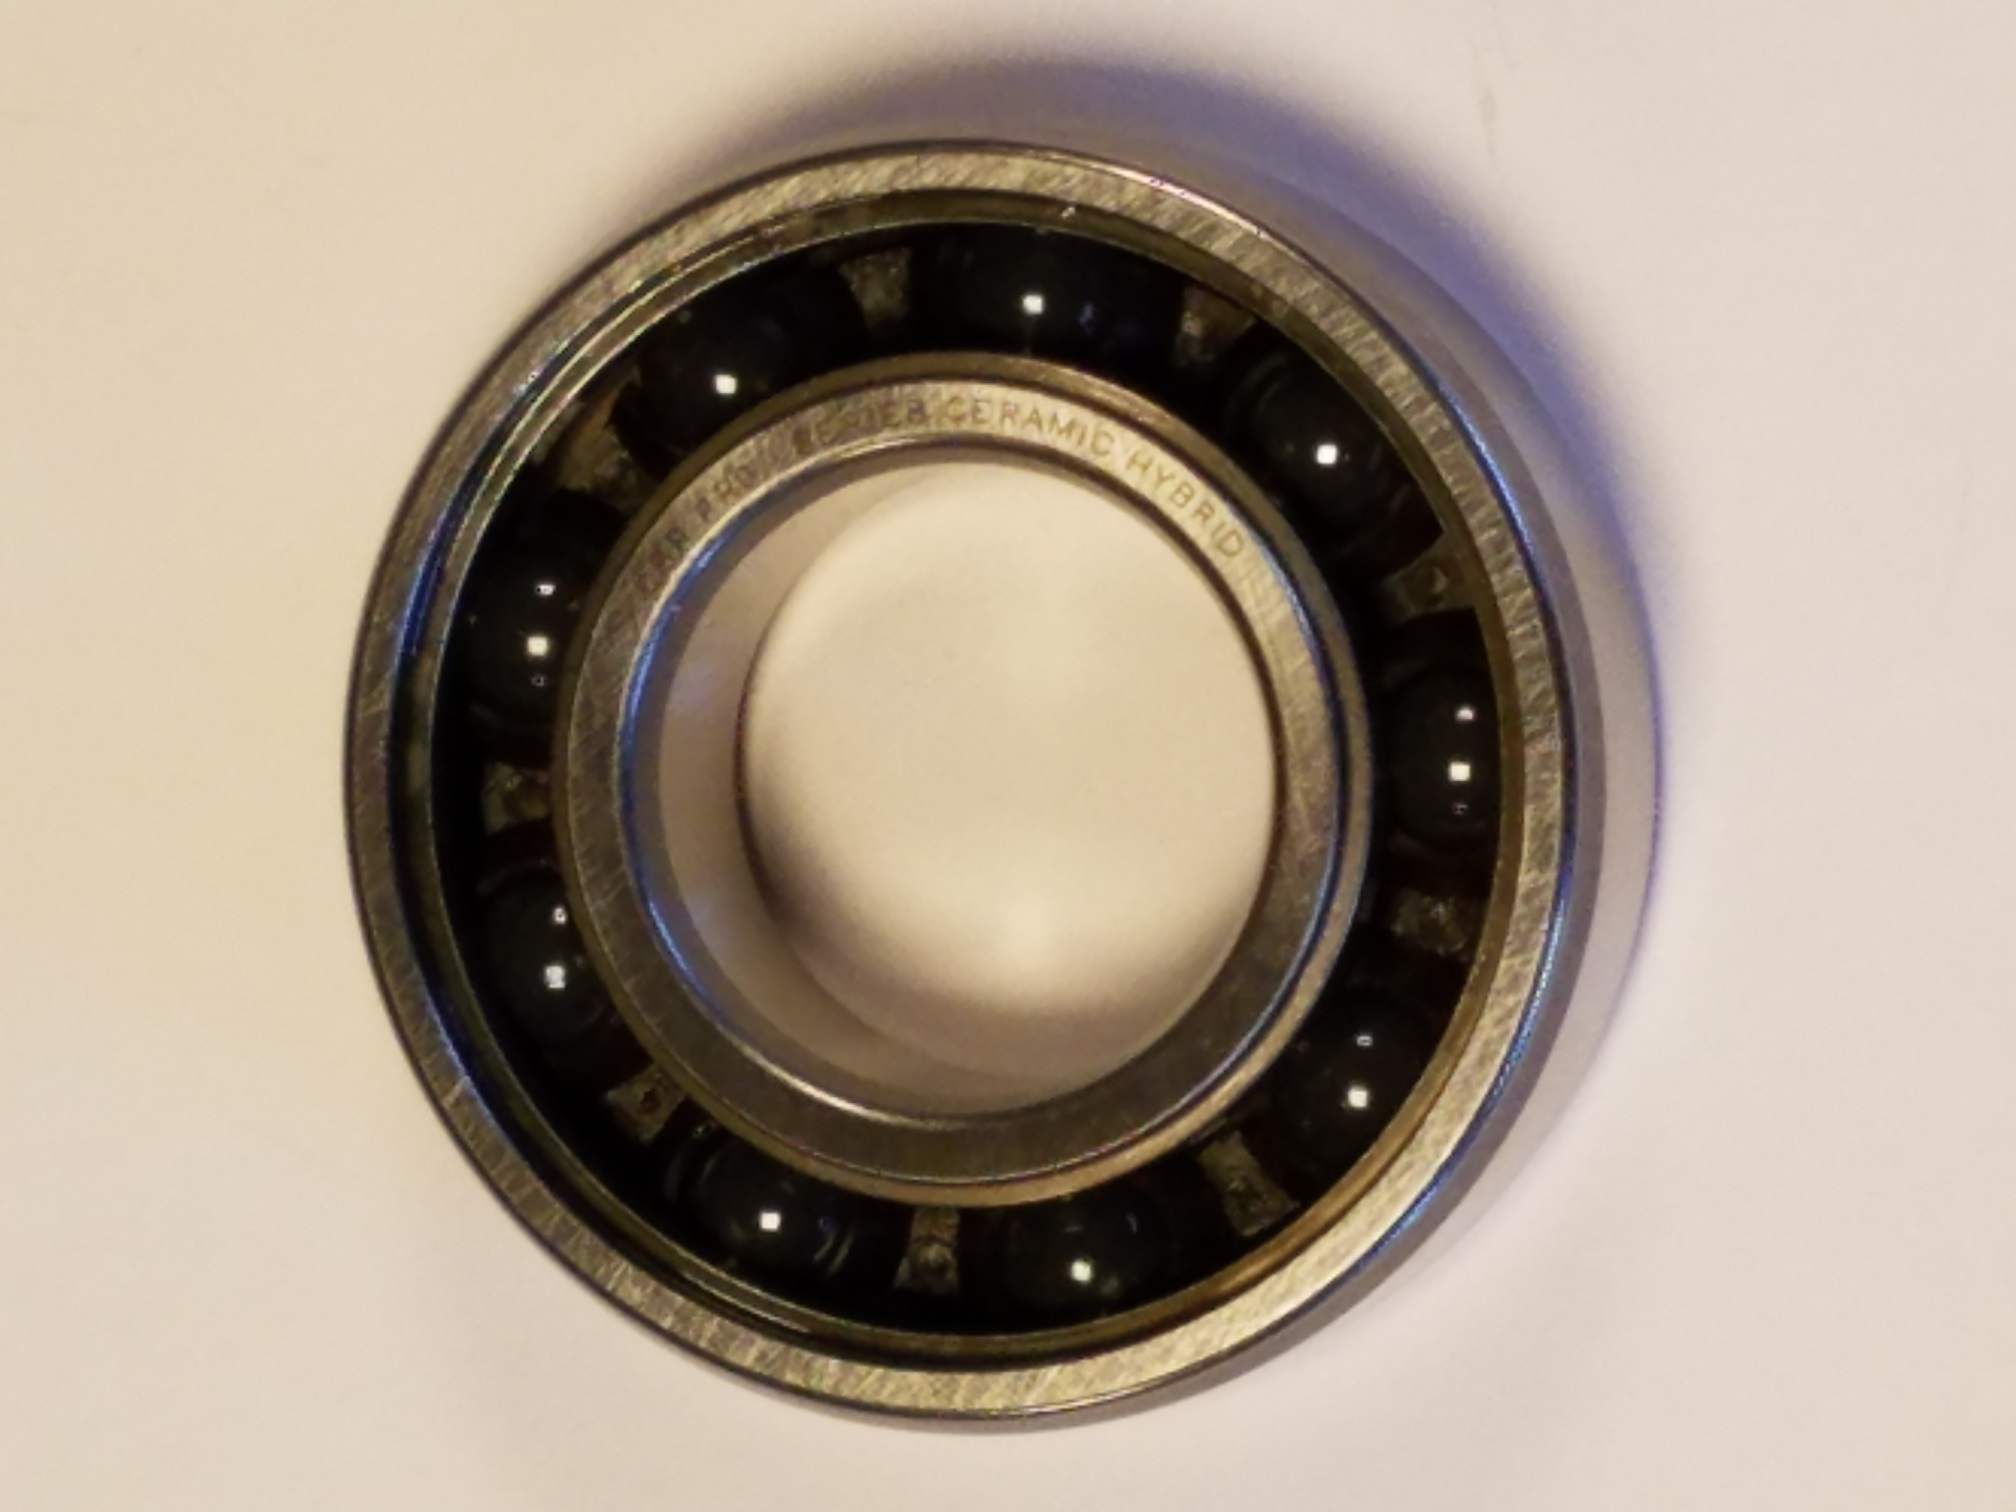 Main Bearing #6205 C4 - Ceramic Hybrid